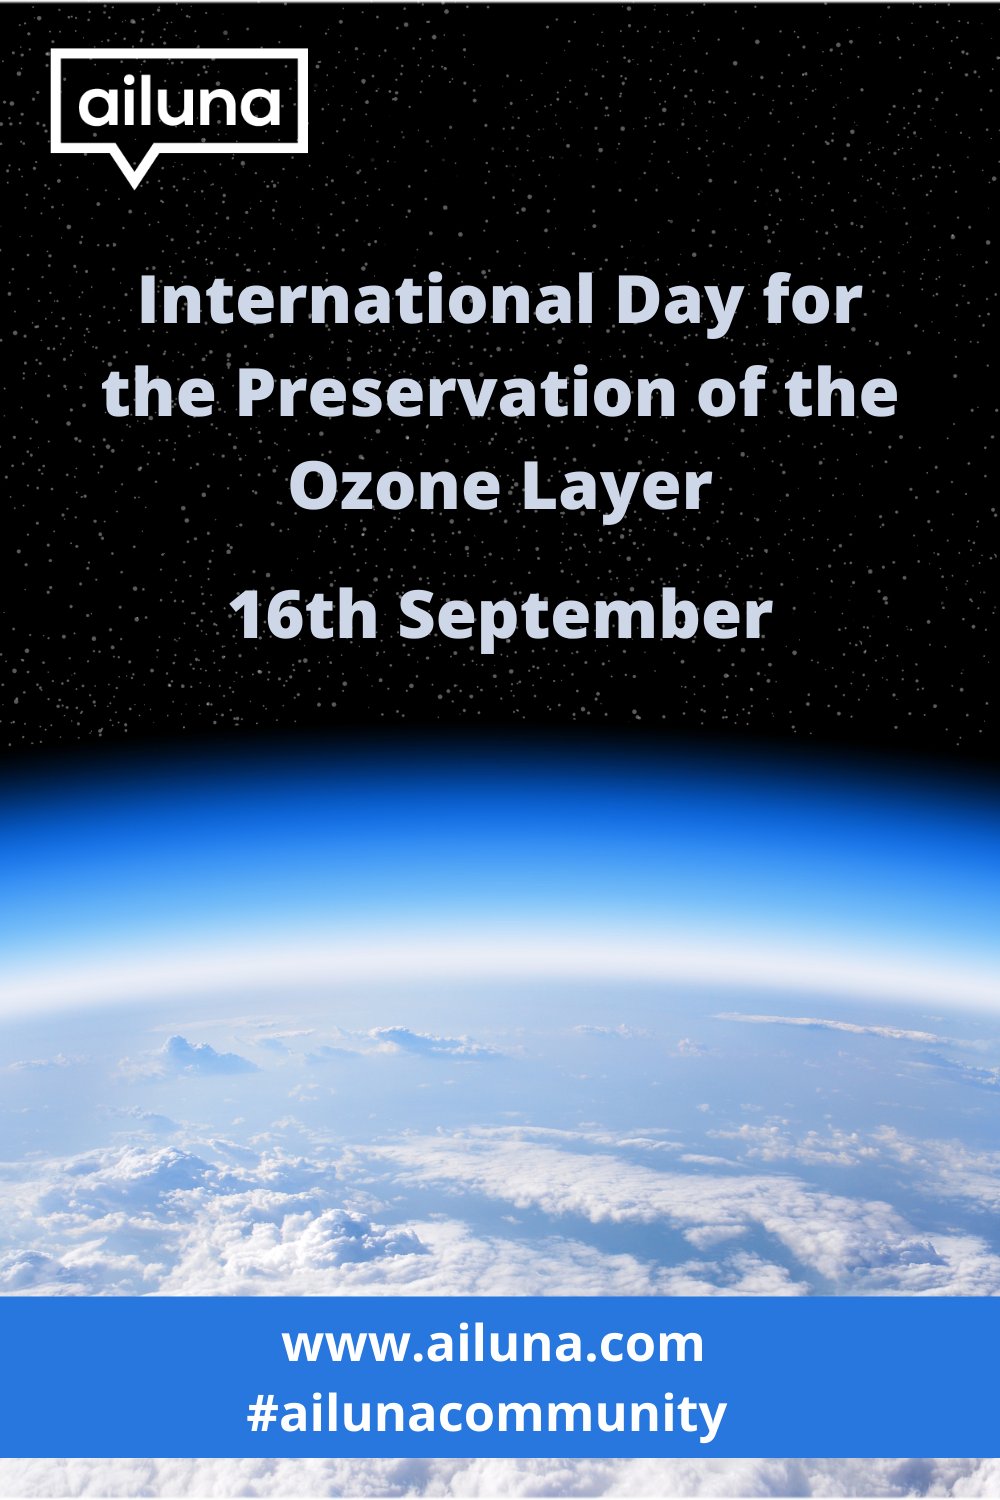 international day for the preservation of the ozone layer pinterest pin